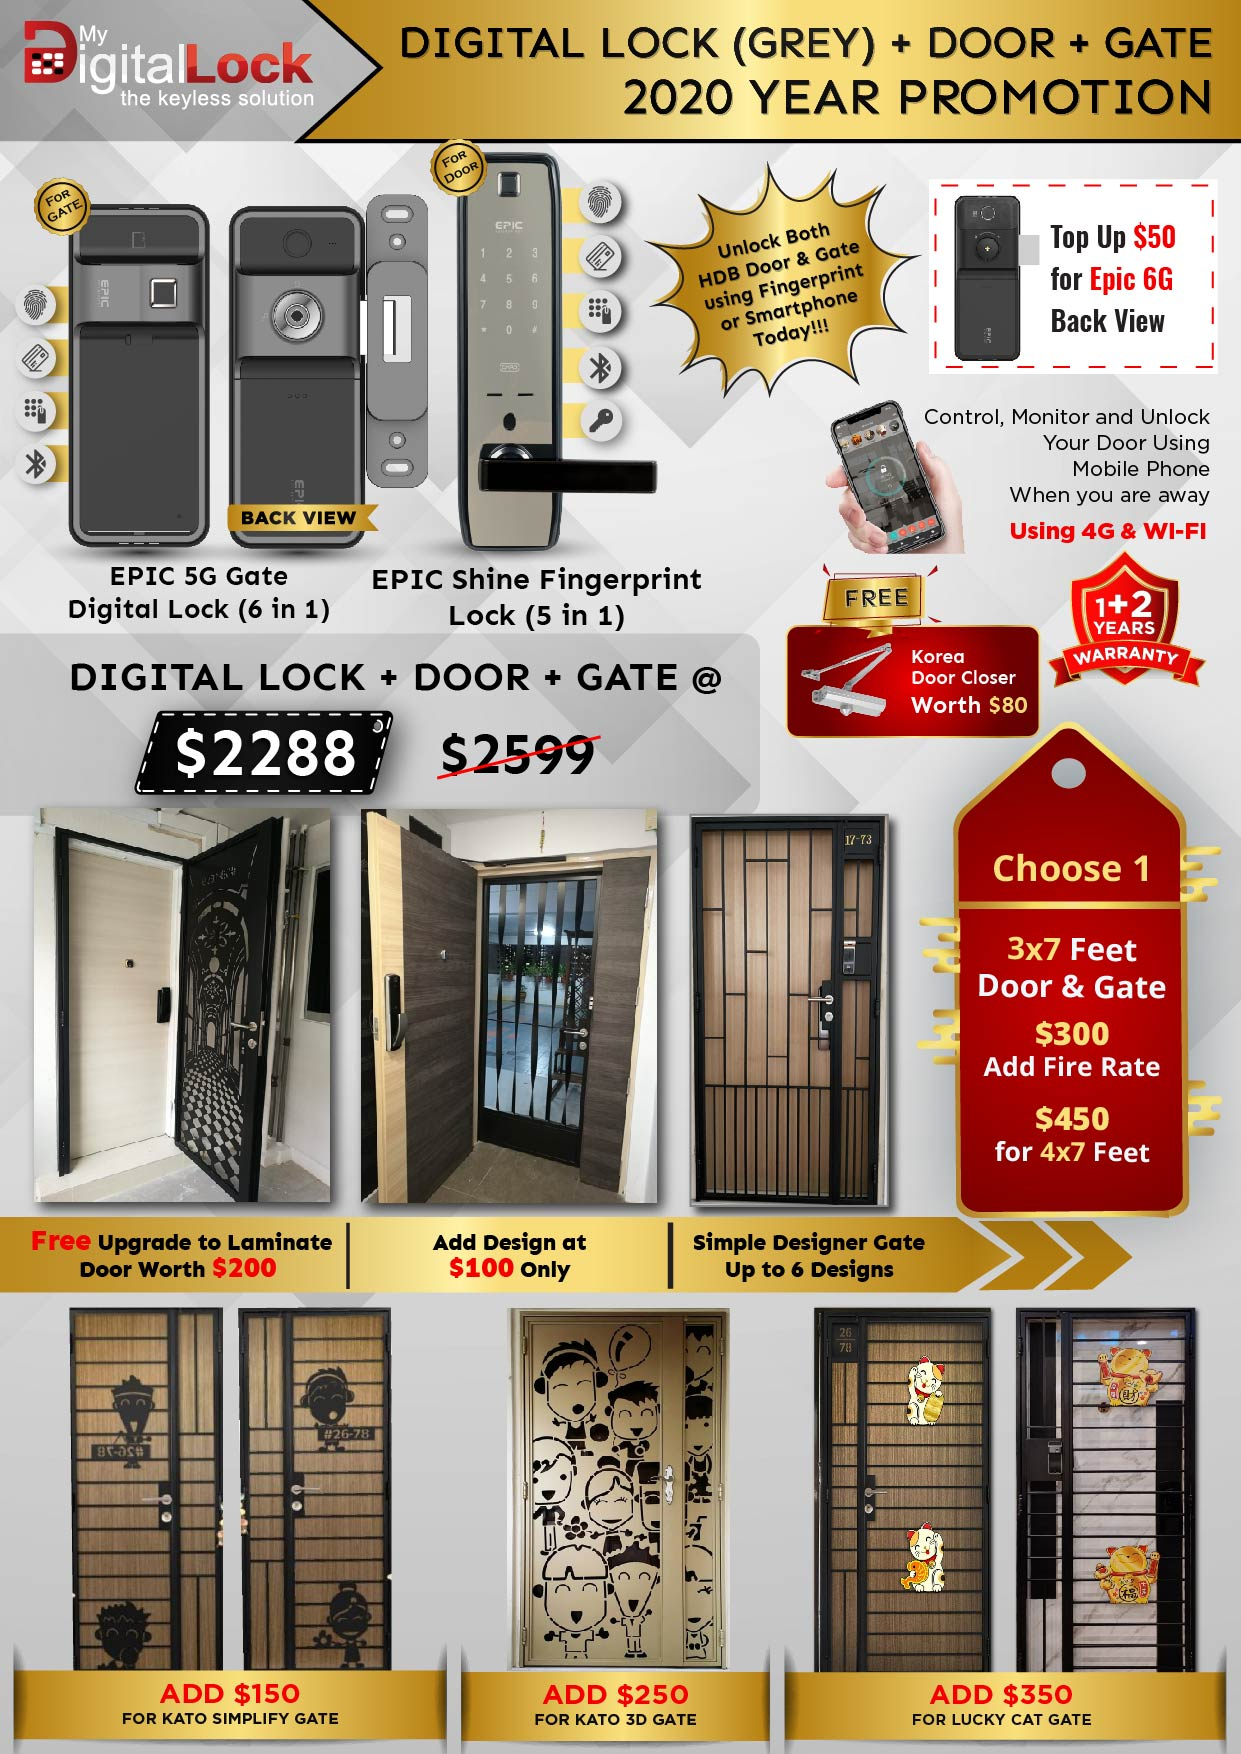 Golden-Rat-Year-HDB-Door-and-Gate-Promotion-with-EPIC-5G-Gate-and-Shine-Fingerprint